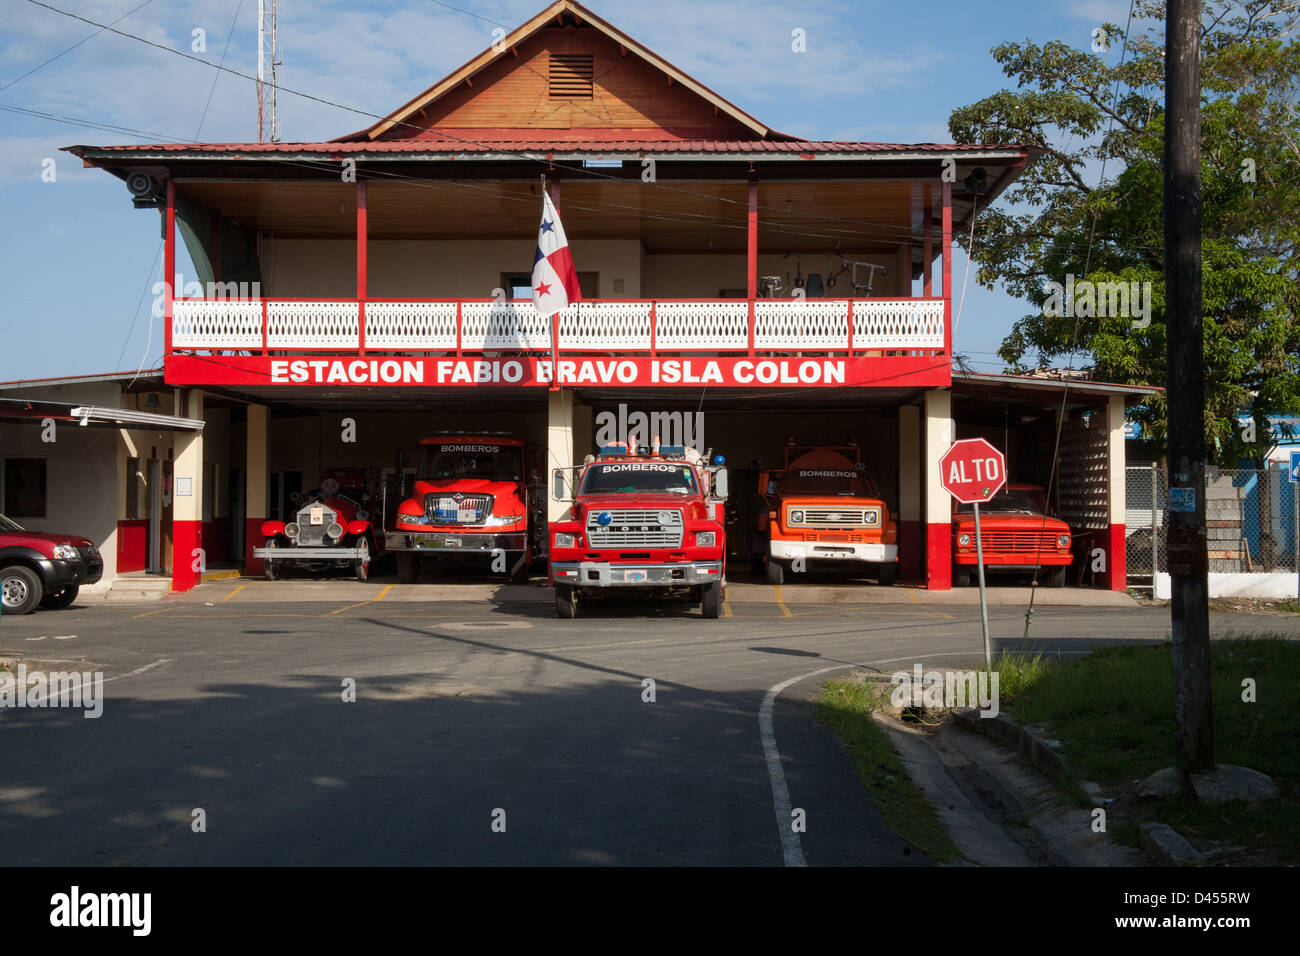 Fire station with fire trucks in Bocas del Toro Town. - Stock Image